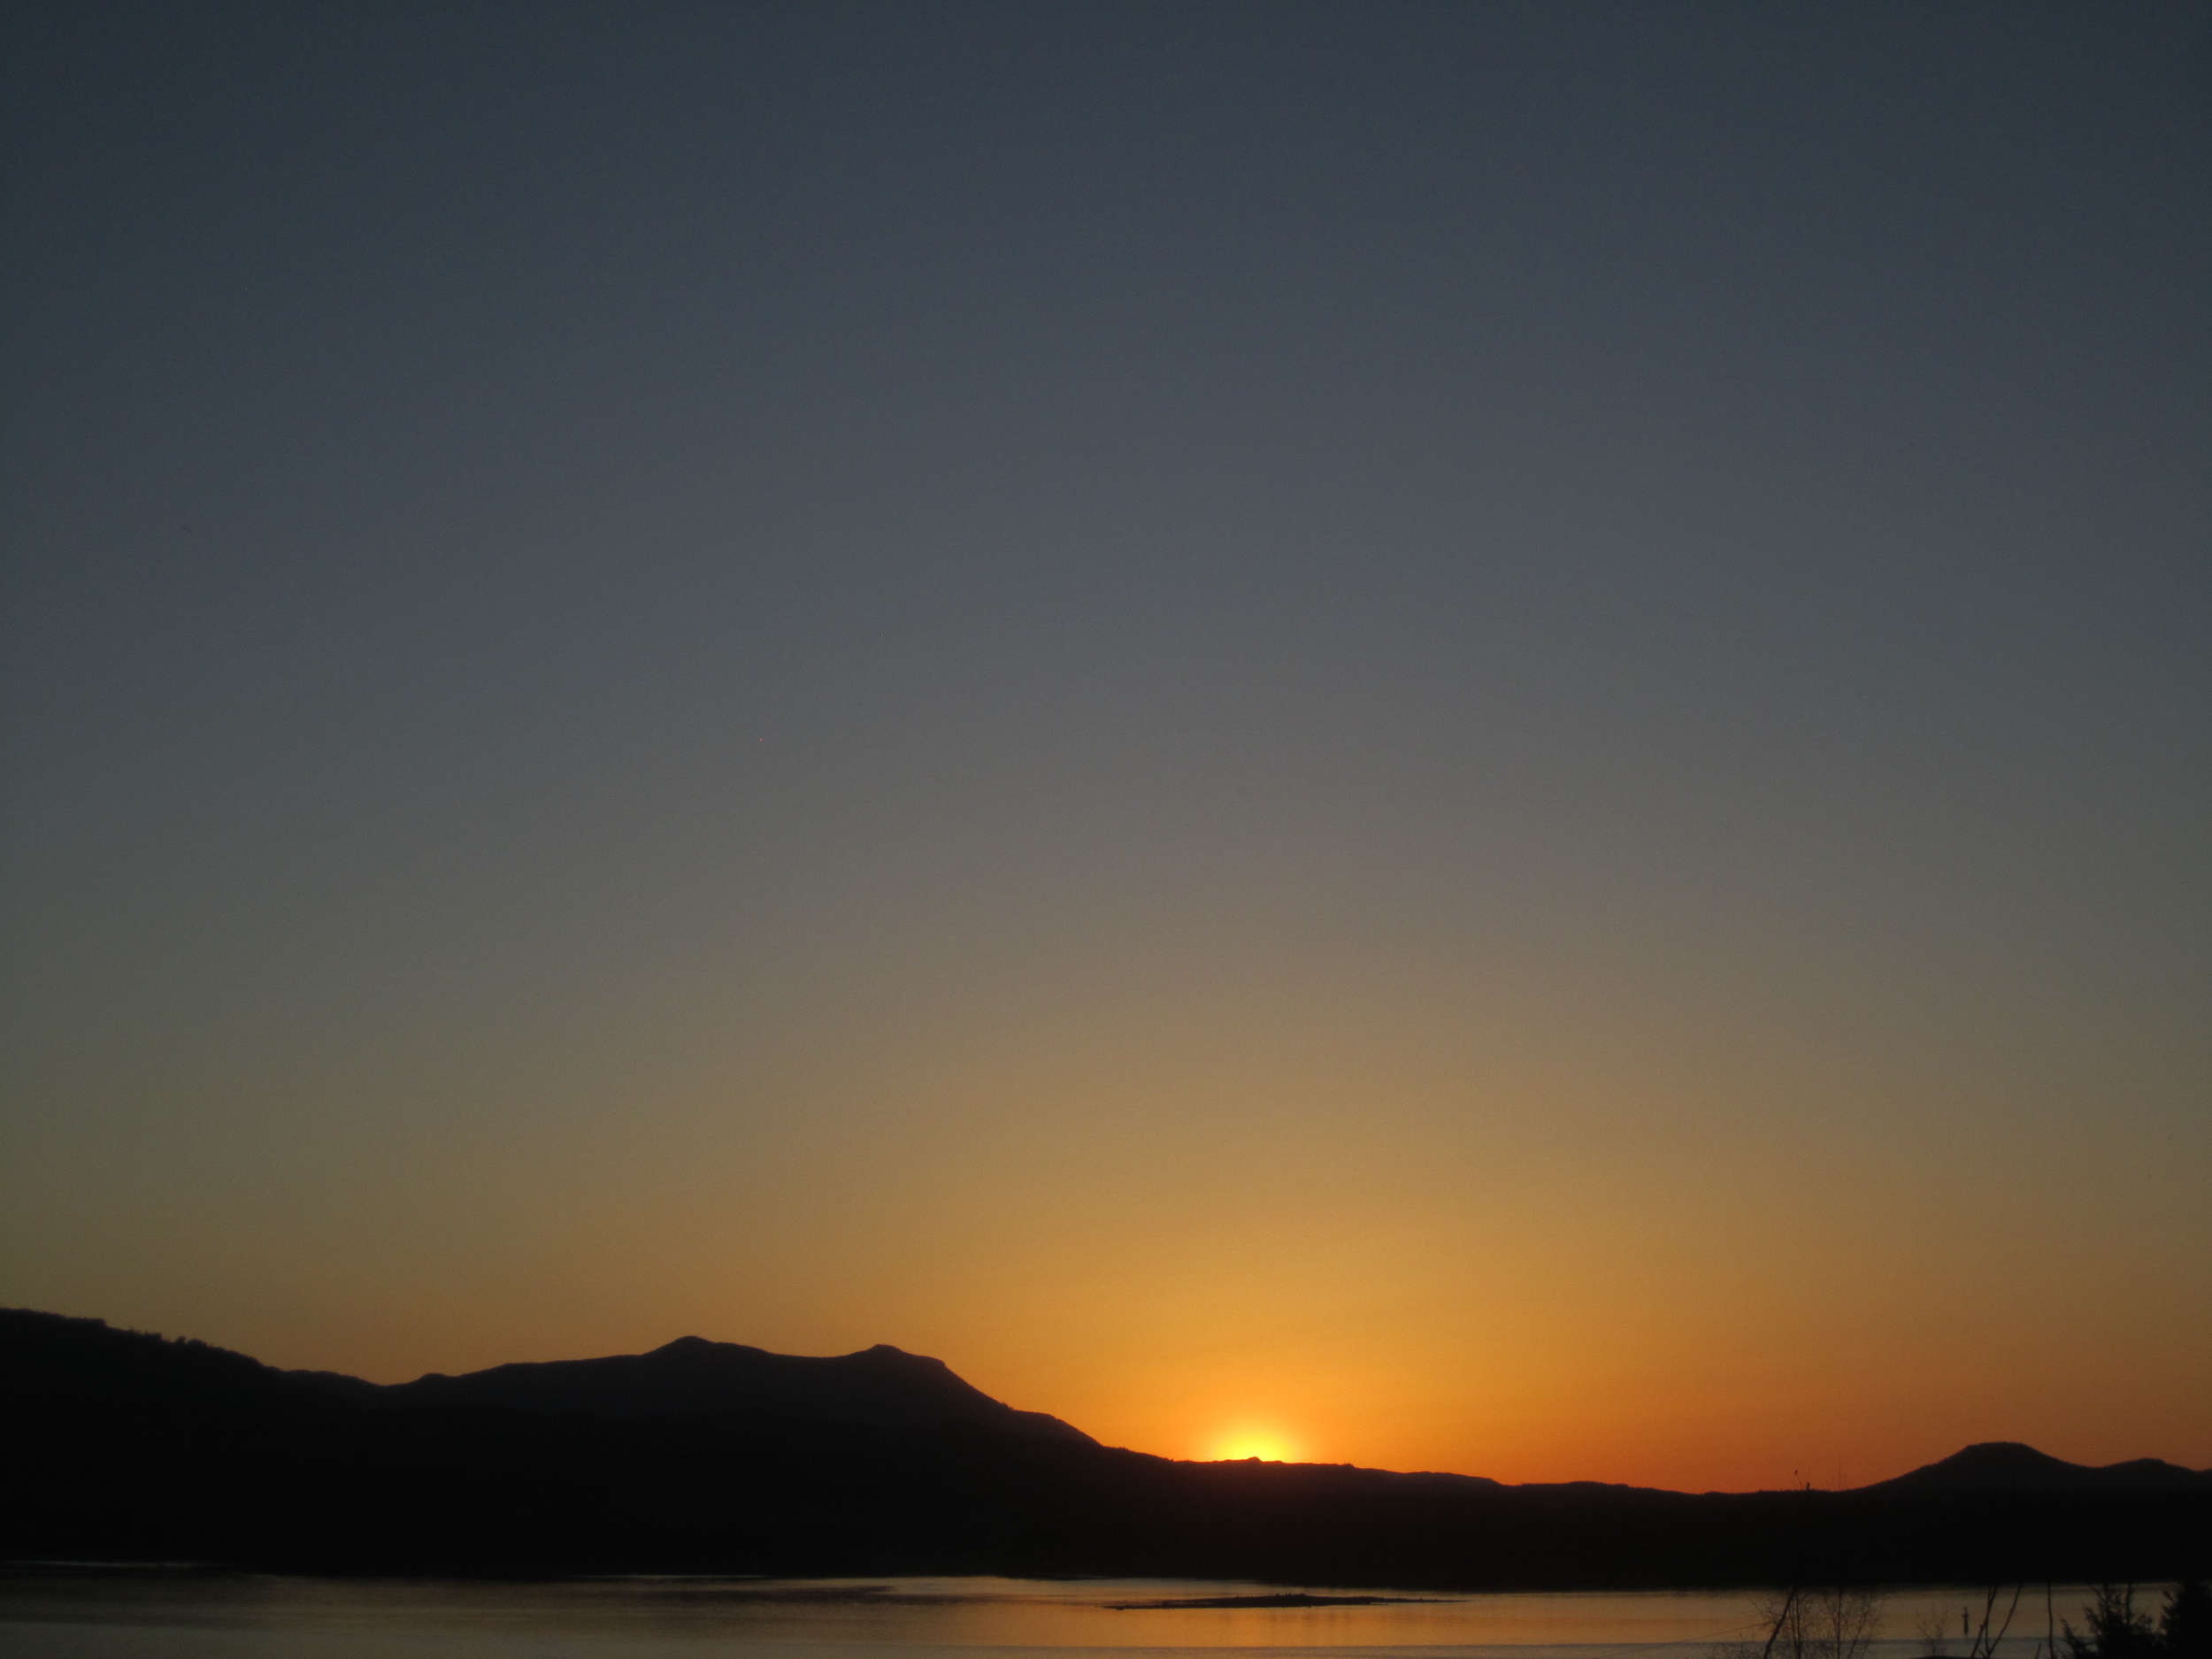 Sunset in Alert Bay, BC. Photo by Vincent Dumoulin.